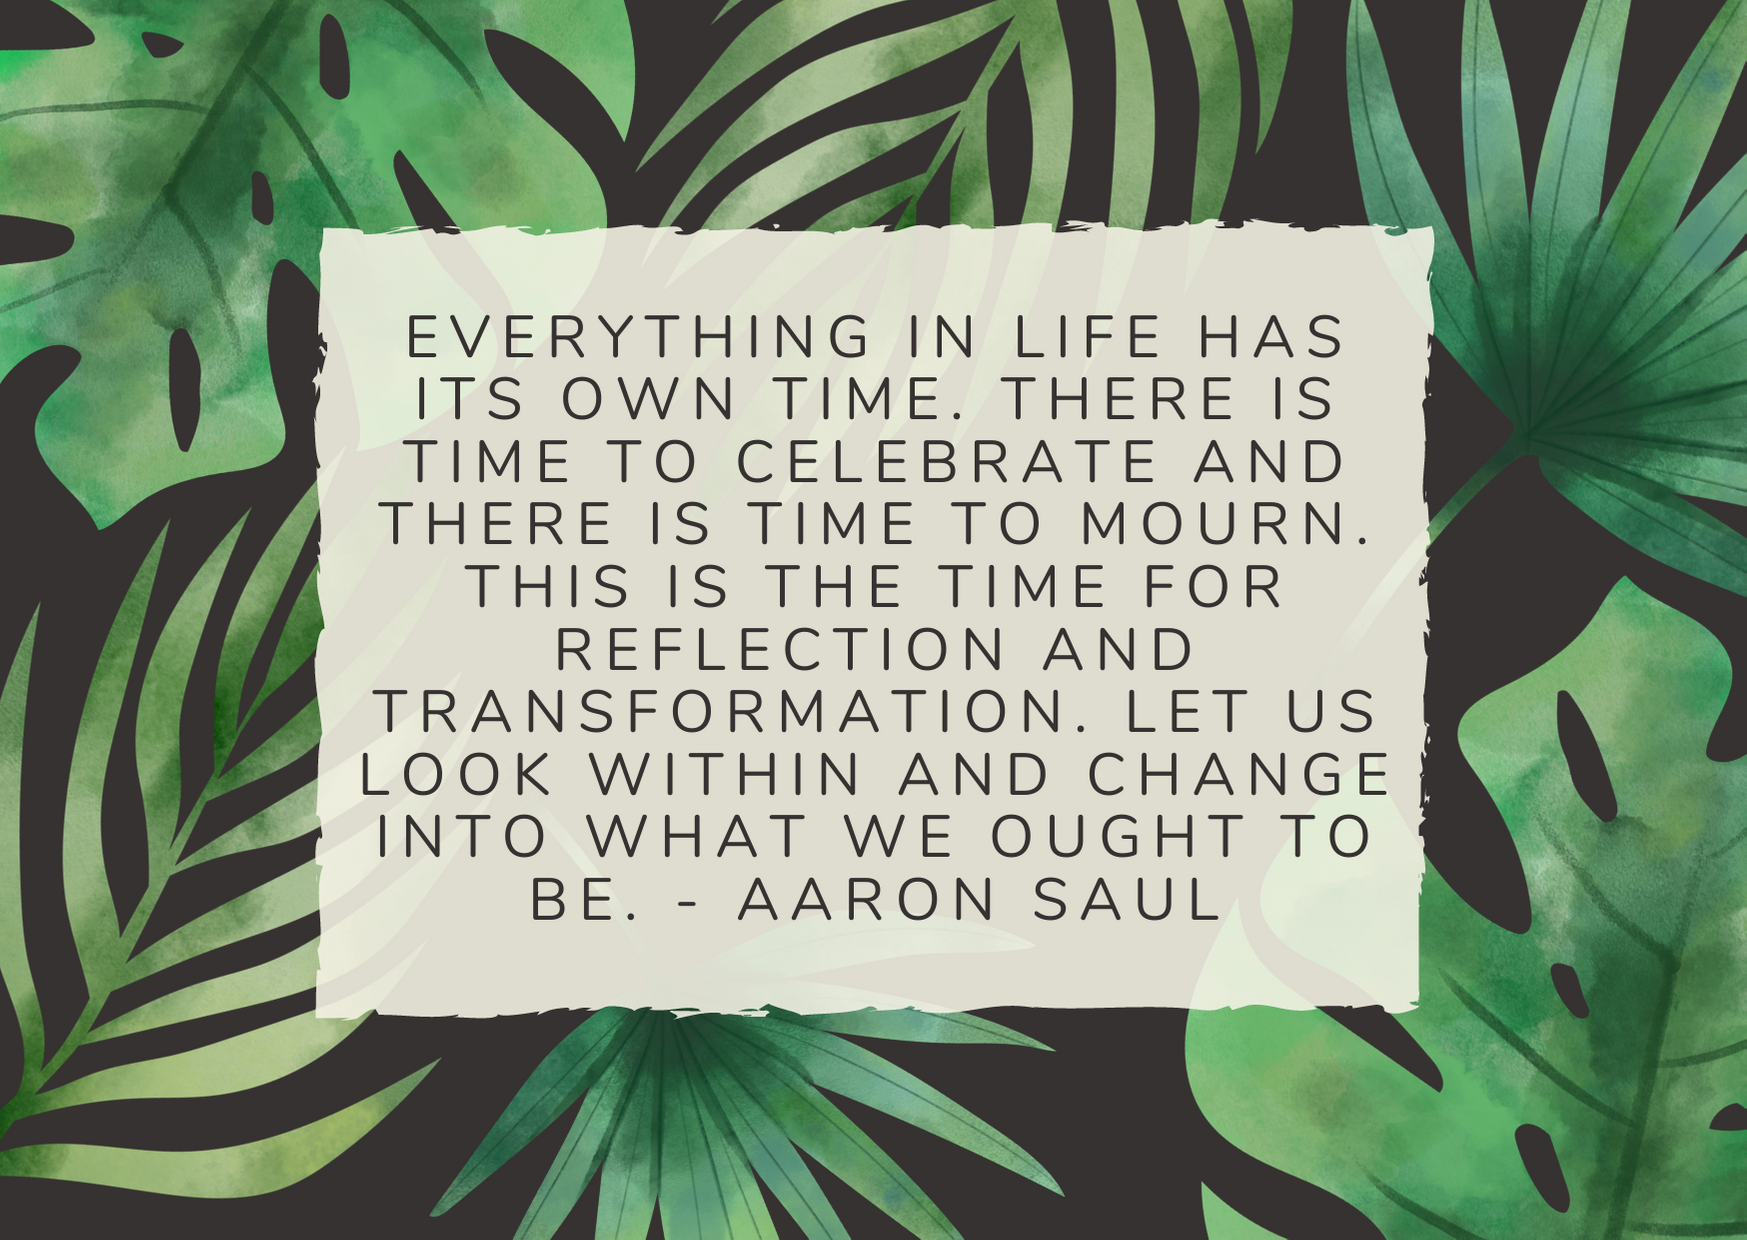 Everything in life has its own time. There is time to celebrate and there is time to mourn. This is the time for reflection and transformation. Let us look within and change into what we ought to be. - Aaron Saul